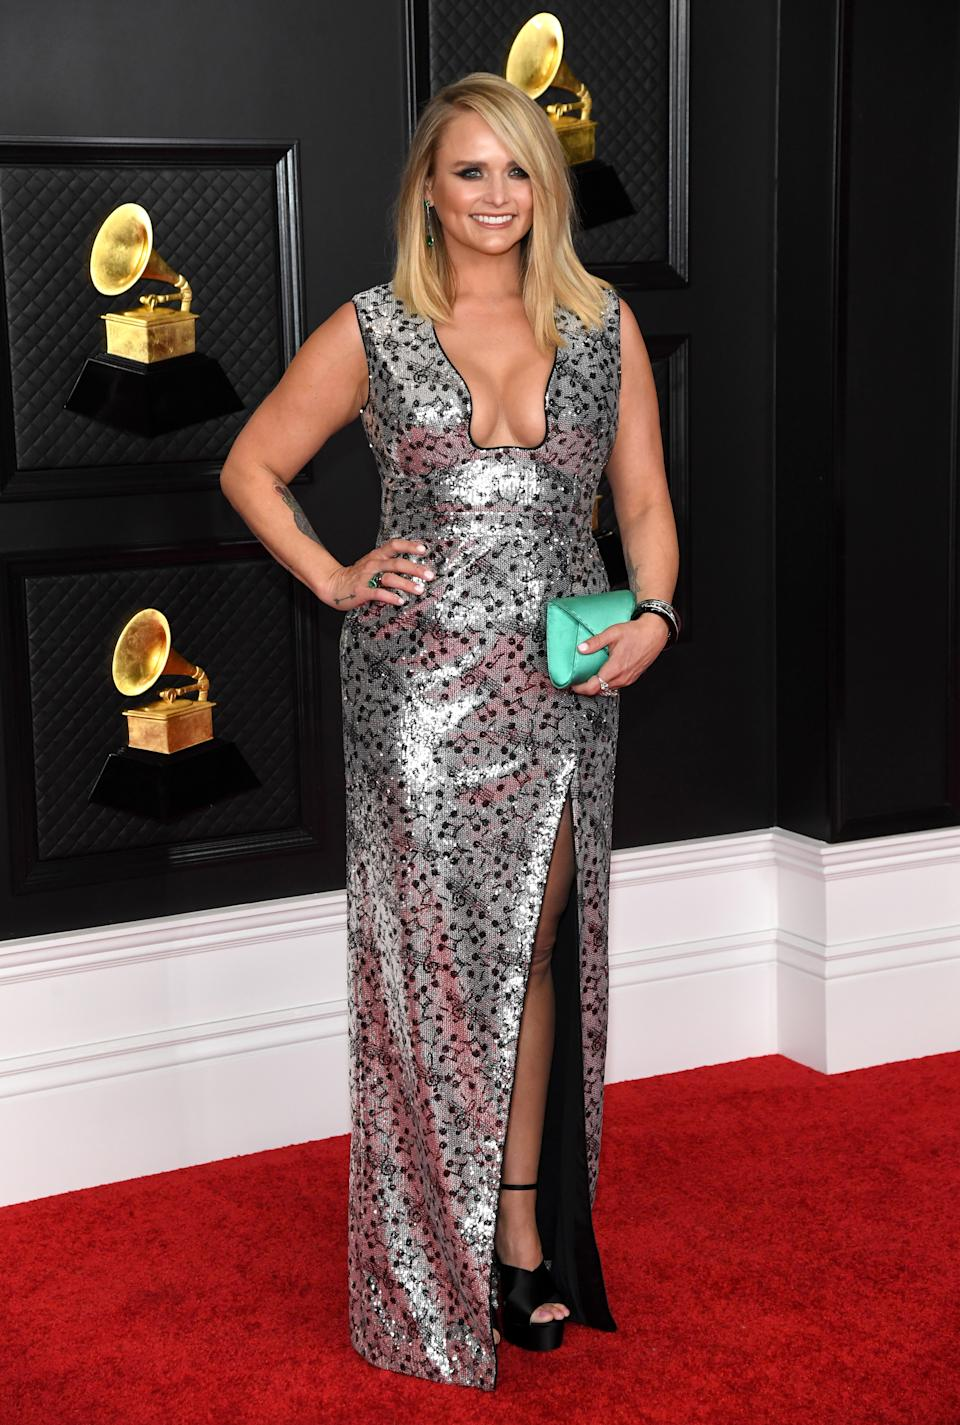 LOS ANGELES, CALIFORNIA - MARCH 14: Miranda Lambert attends the 63rd Annual GRAMMY Awards at Los Angeles Convention Center on March 14, 2021 in Los Angeles, California. (Photo by Kevin Mazur/Getty Images for The Recording Academy )